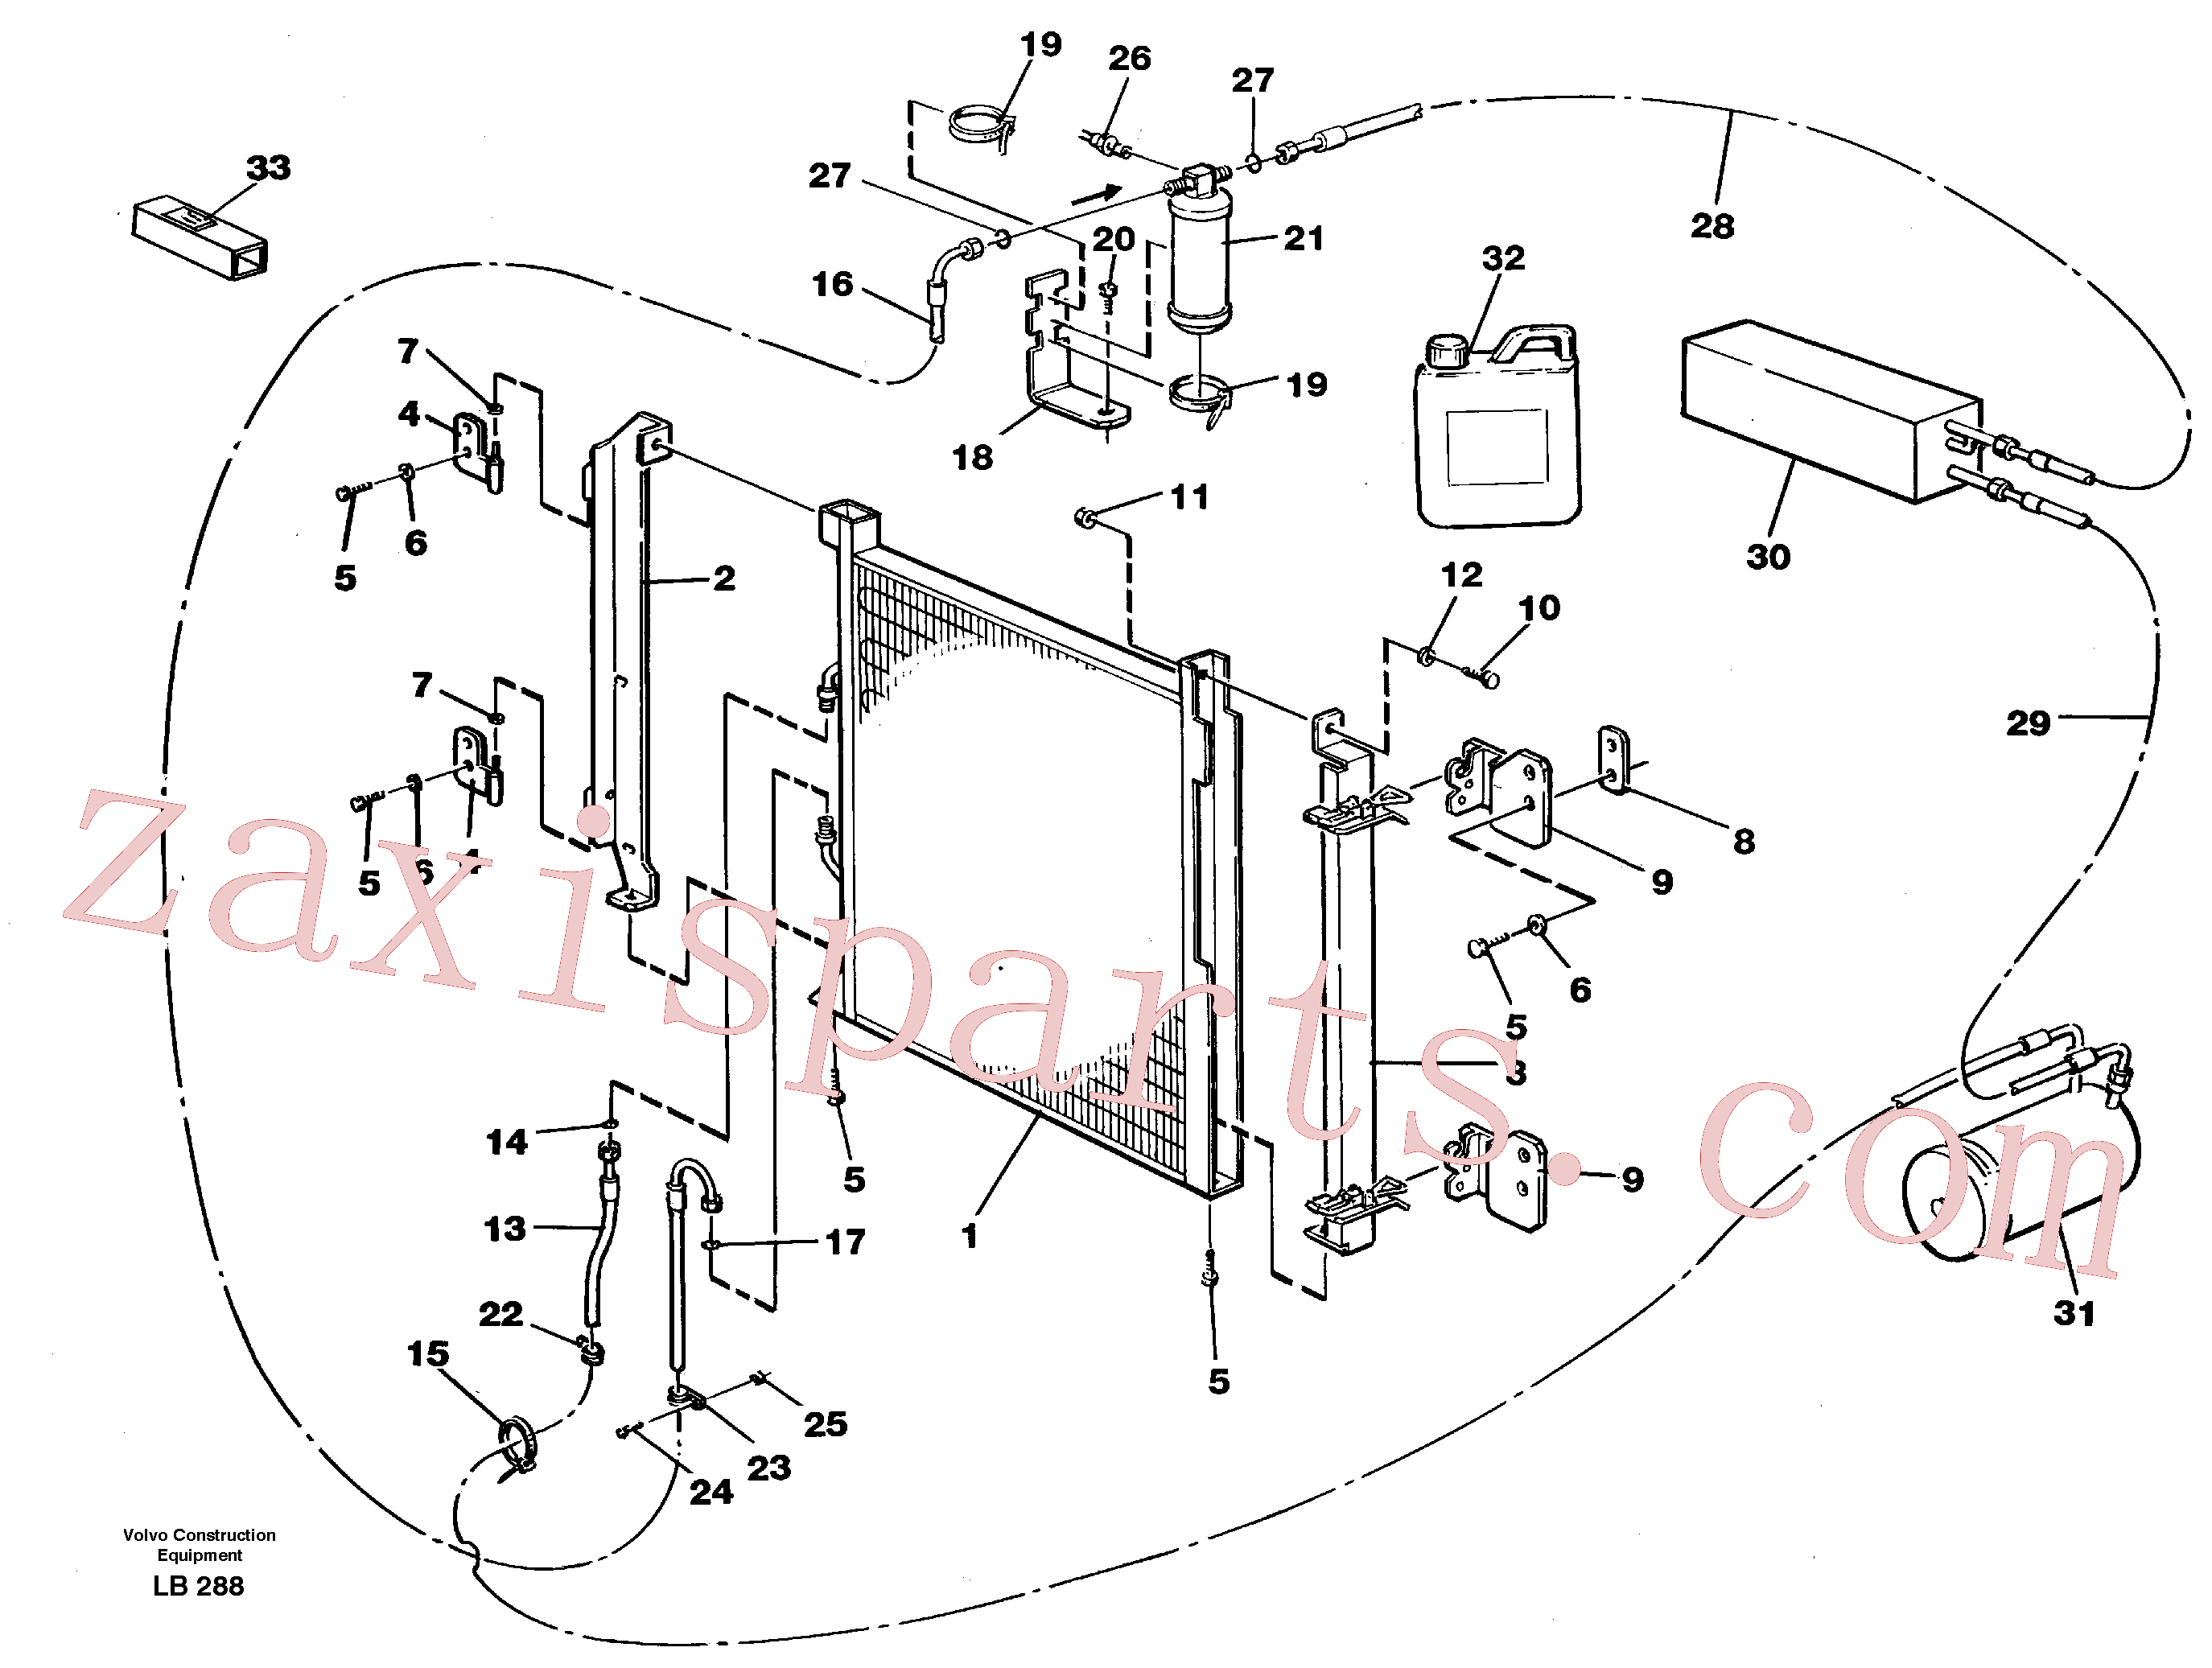 VOE3522589 for Volvo Condensor with fitting parts, cooling agent R134a(LB288 assembly)